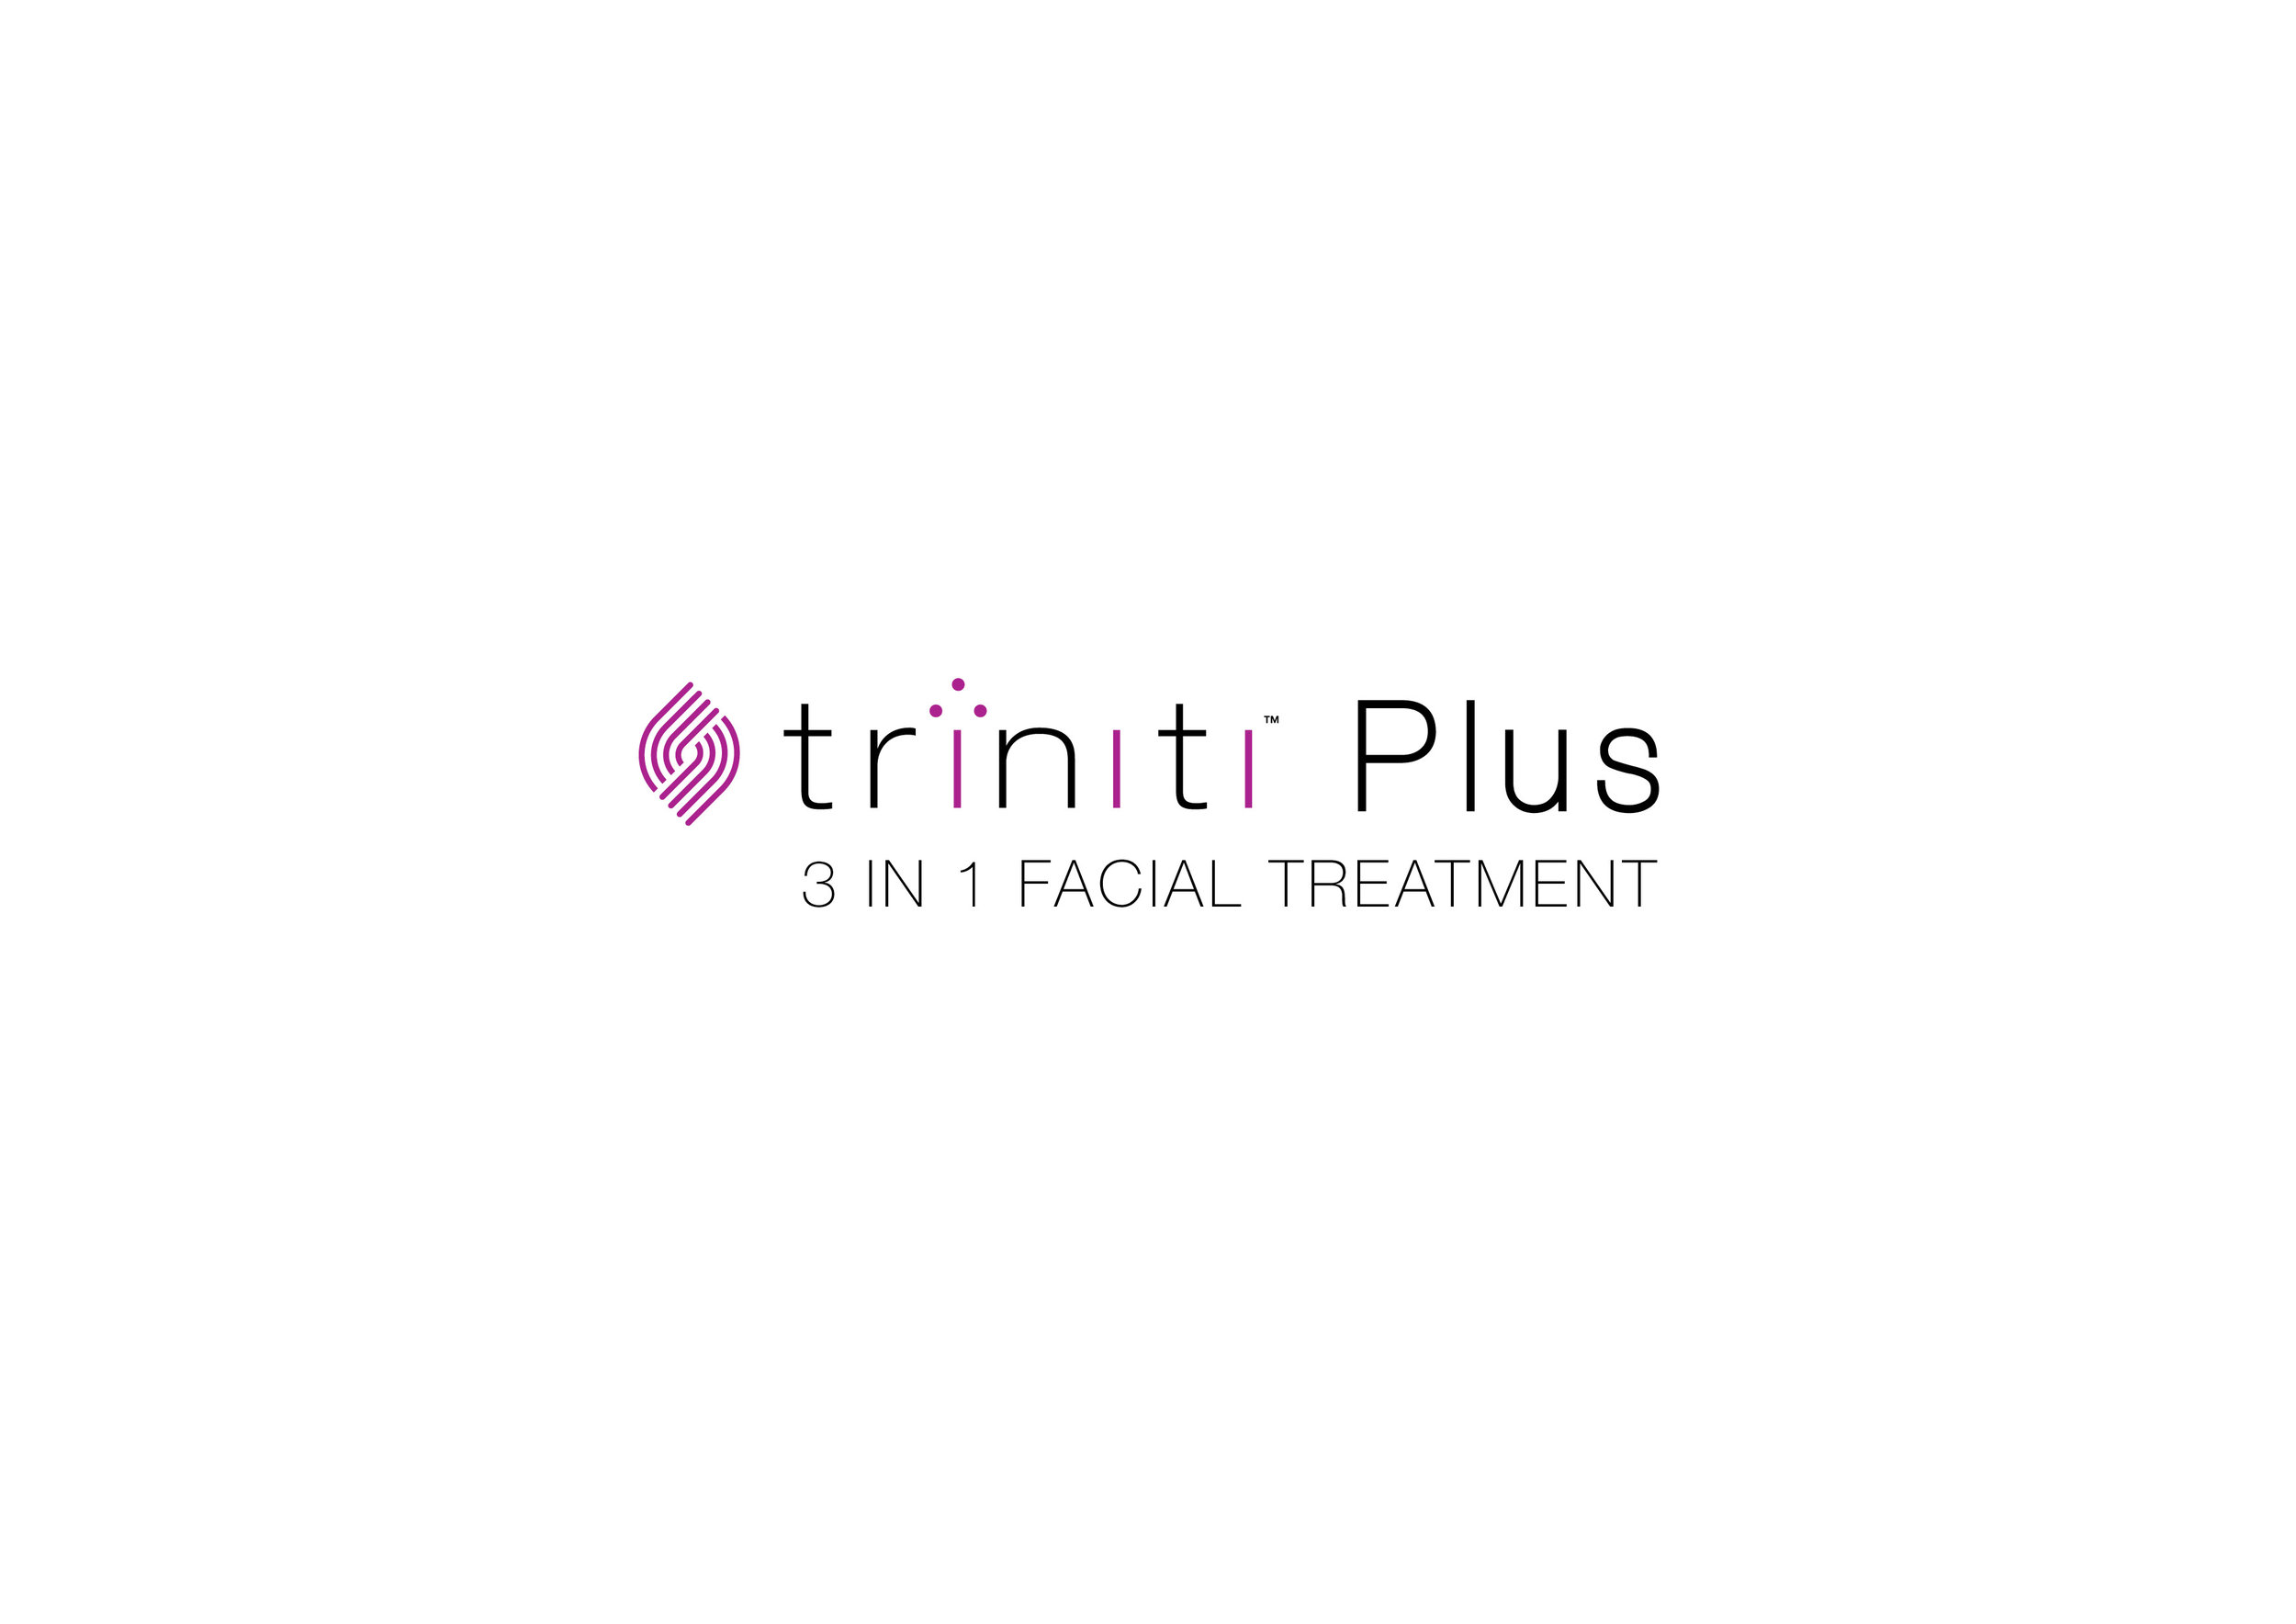 IPL + Sublime + Sublate, all in one session, is the triniti 3 in 1 facial: Tighten, Tone and Correct.